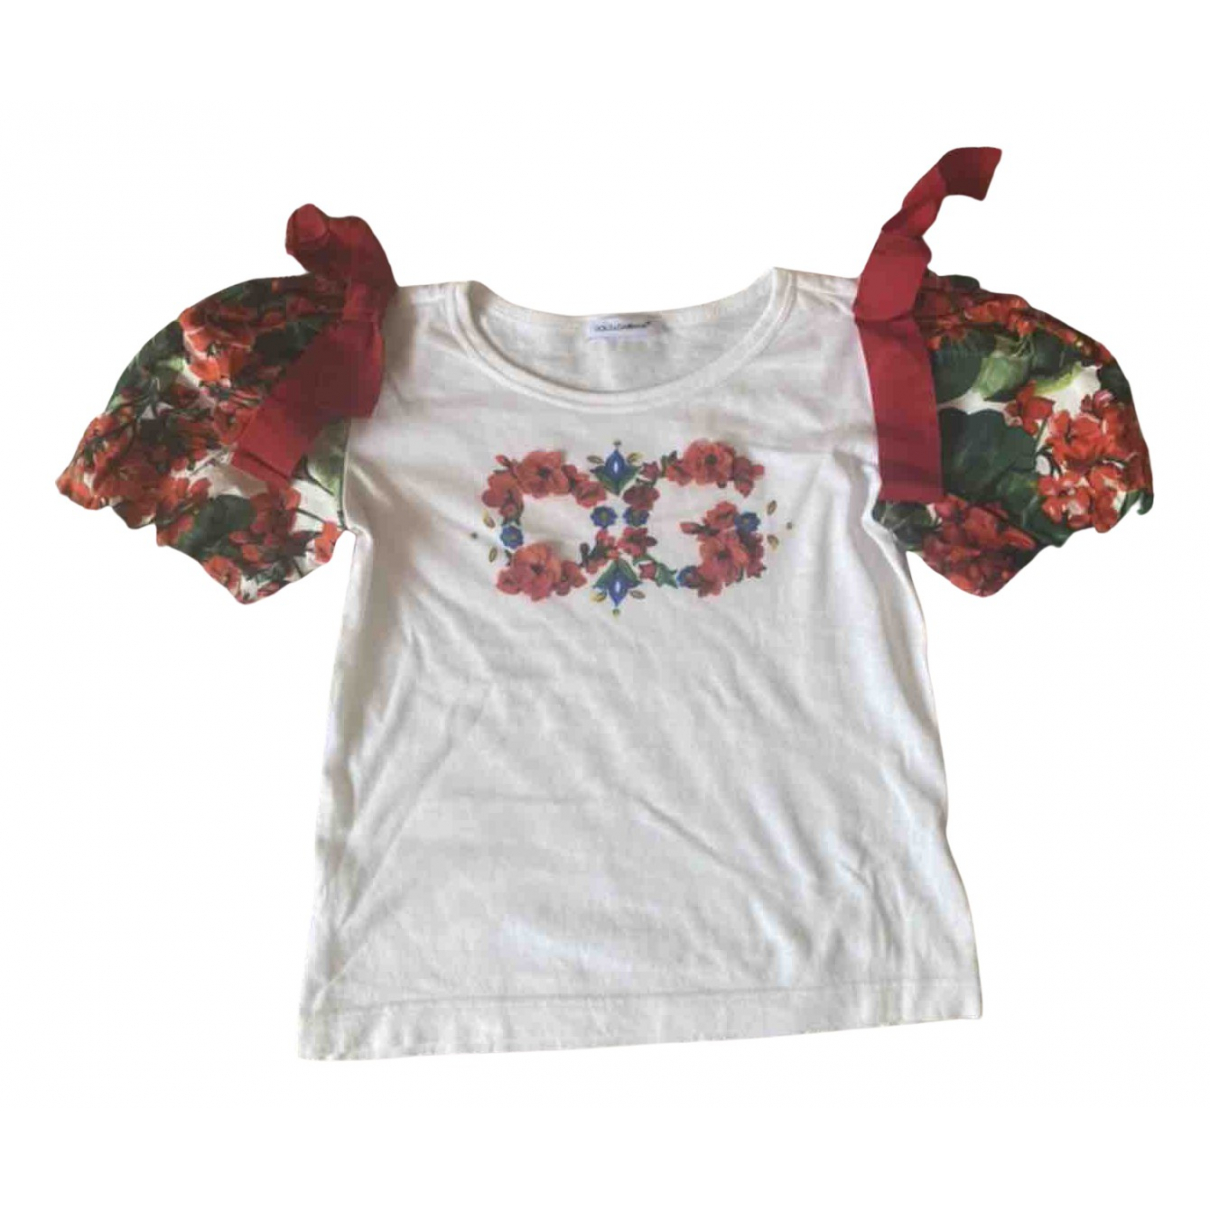 Dolce & Gabbana N White Cotton  top for Kids 6 years - up to 114cm FR